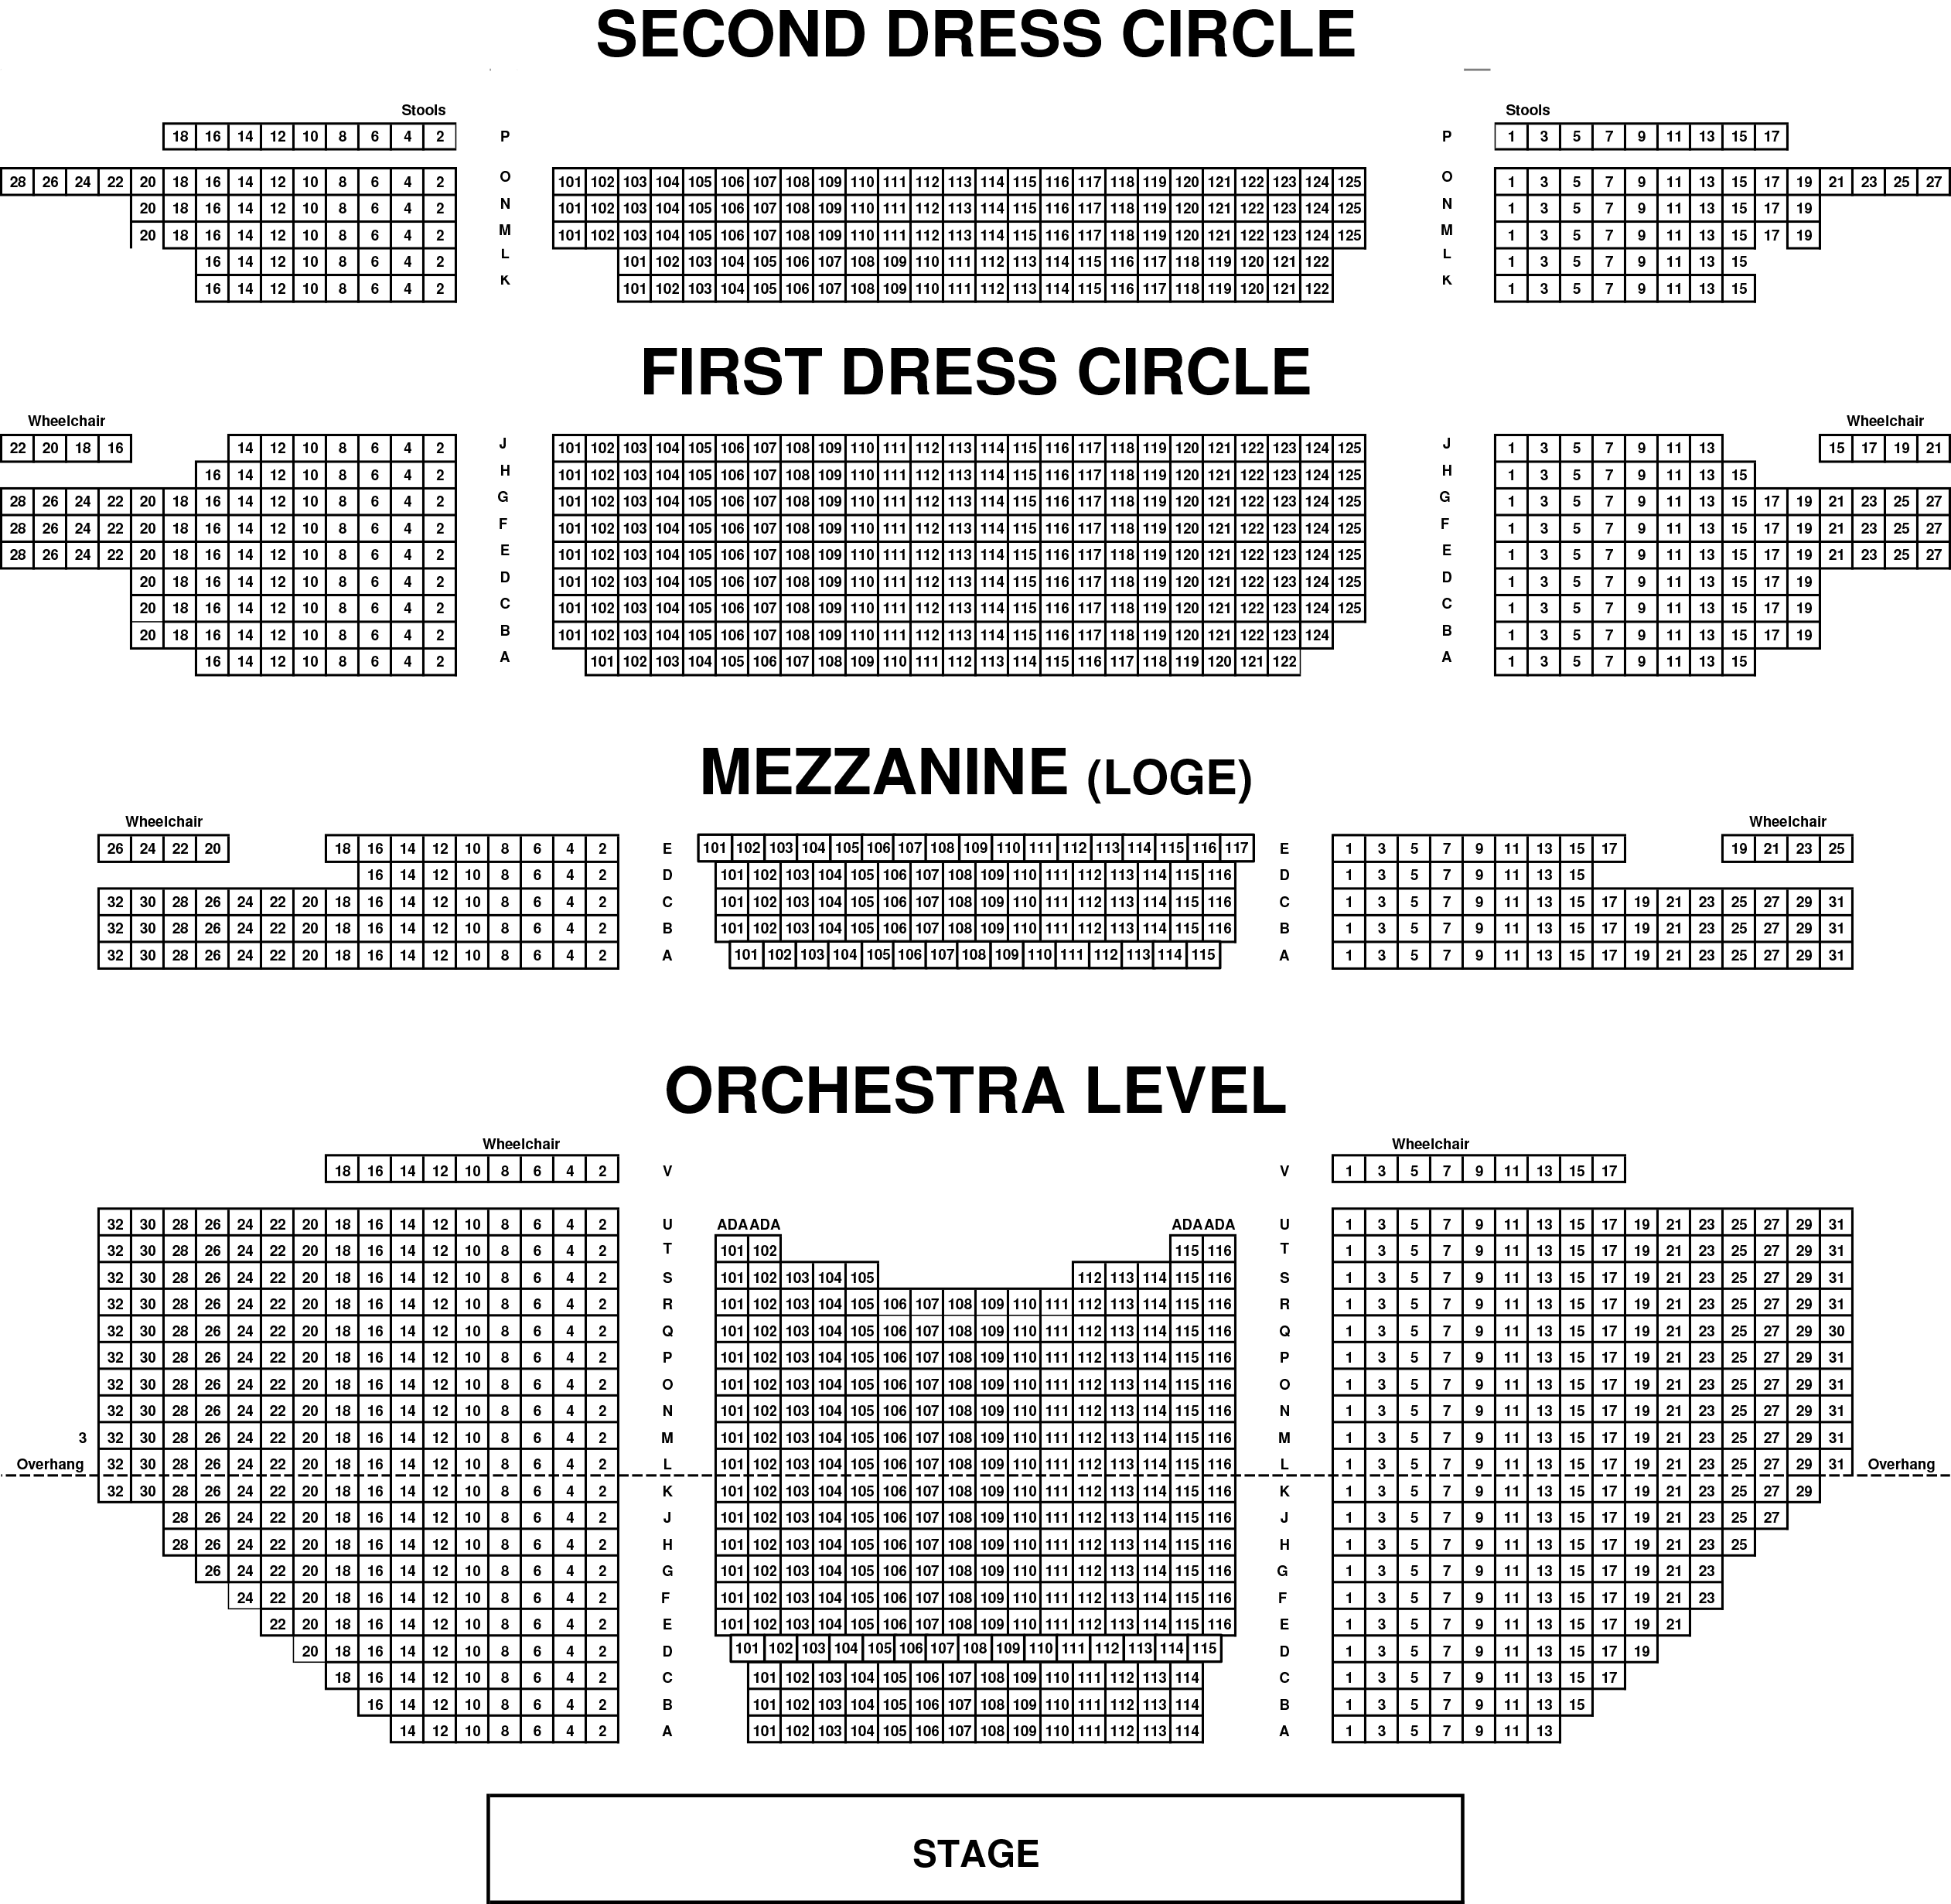 Richmond Carpenter Theater Seating Chart